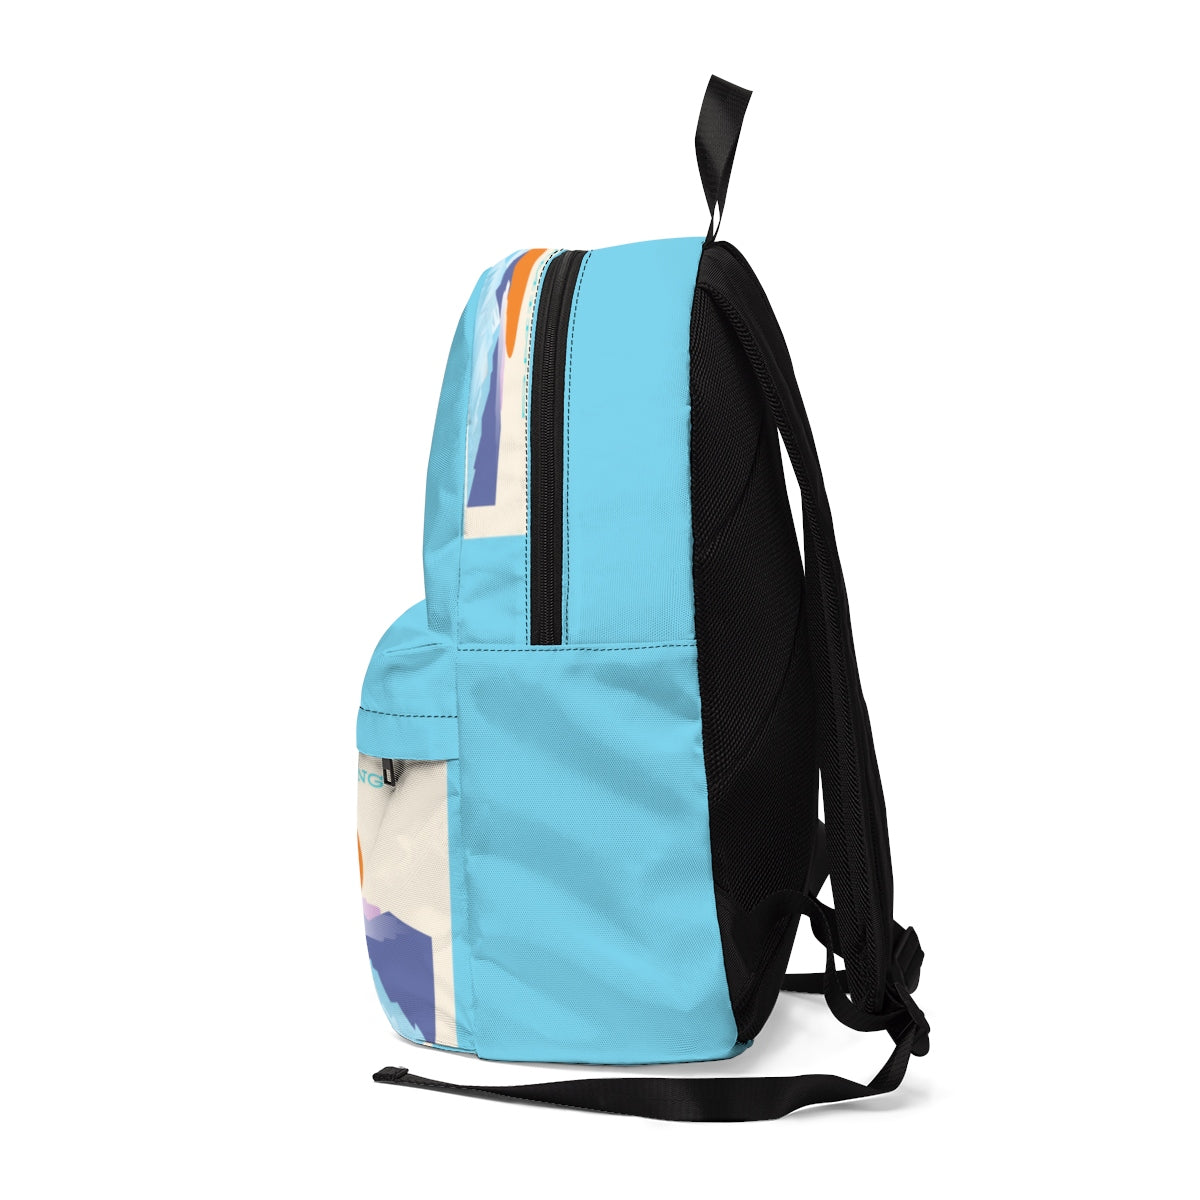 The SD Classic Backpack